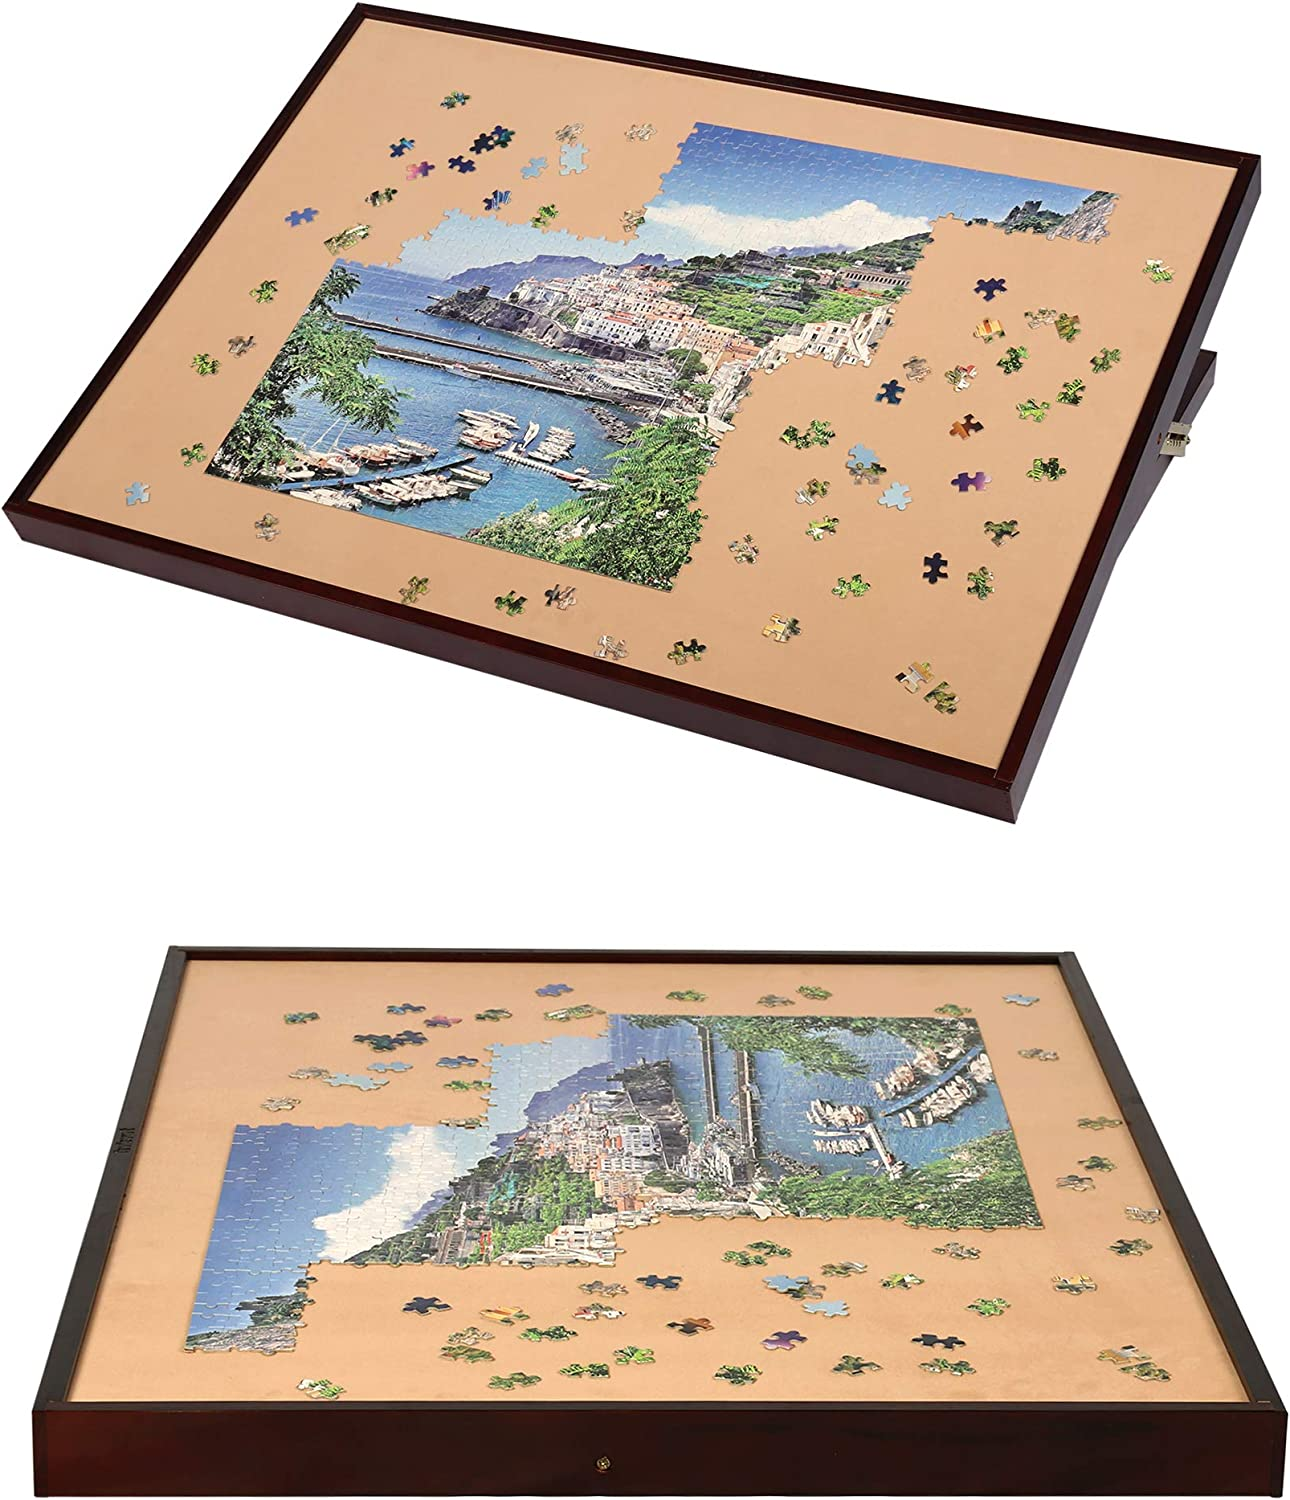 LAVIEVERT Wooden Jigsaw Puzzle Table Large Portable Folding Tilting Table for Up to 1,500 Pieces Puzzles